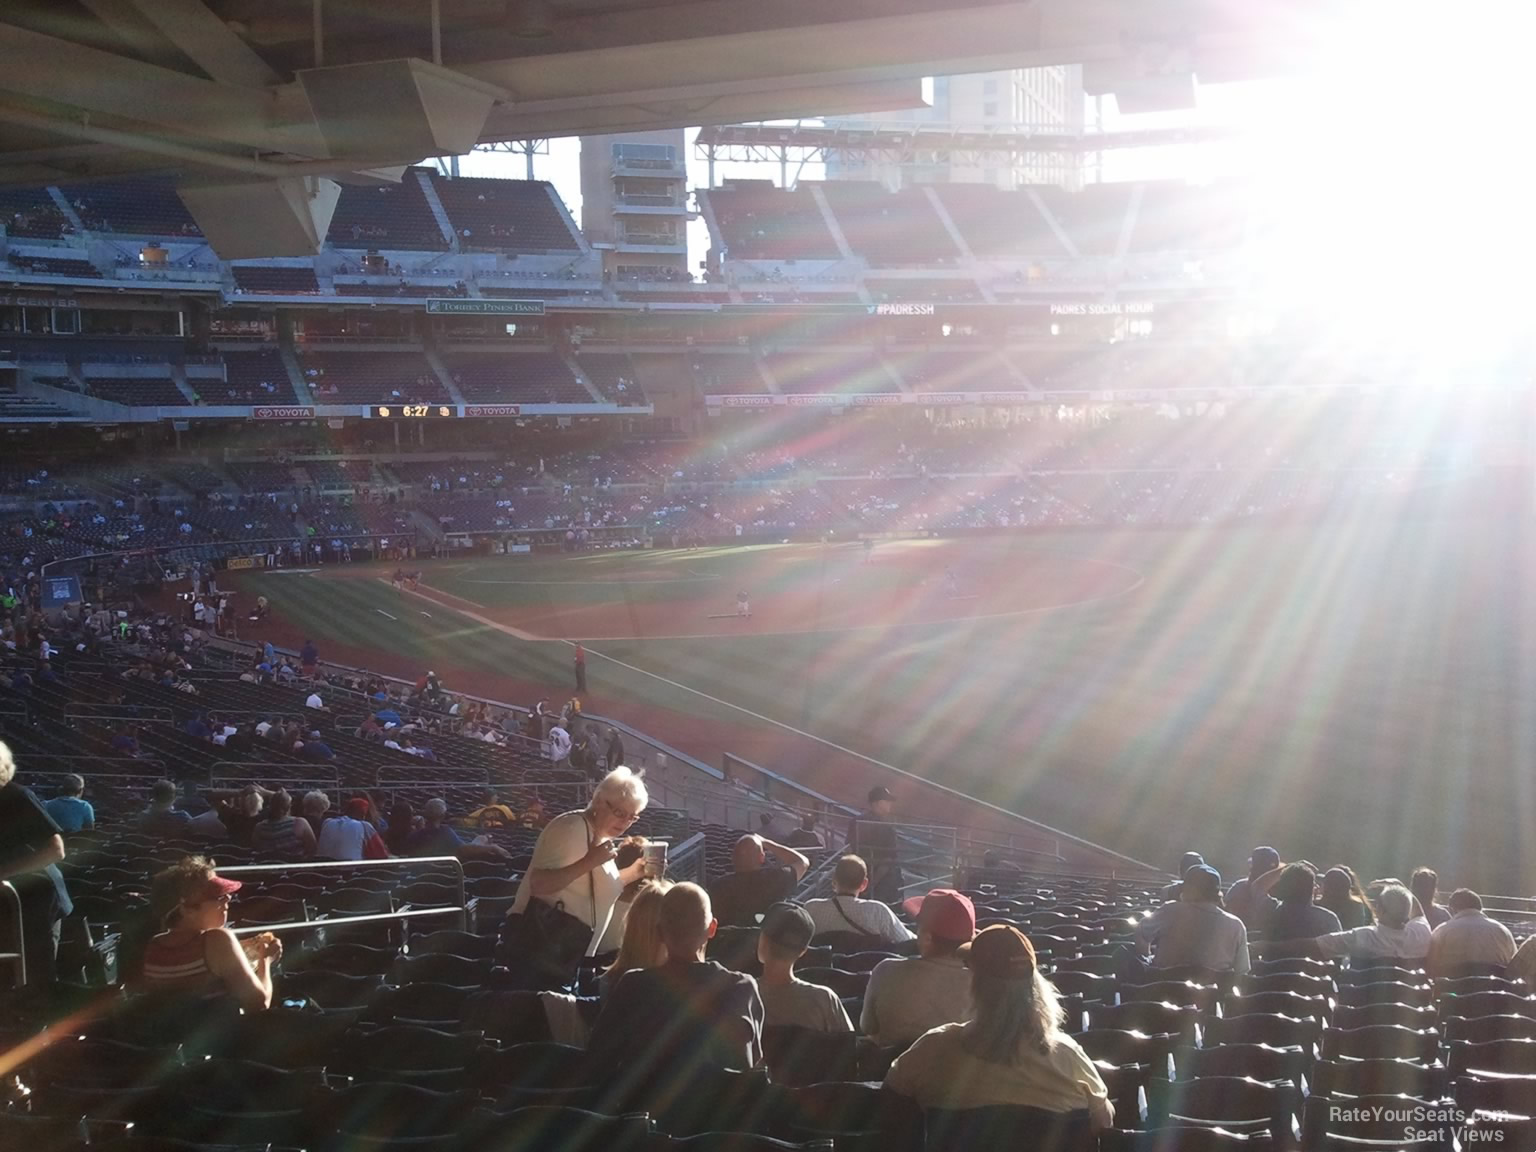 Sun on the first base side at Petco Park